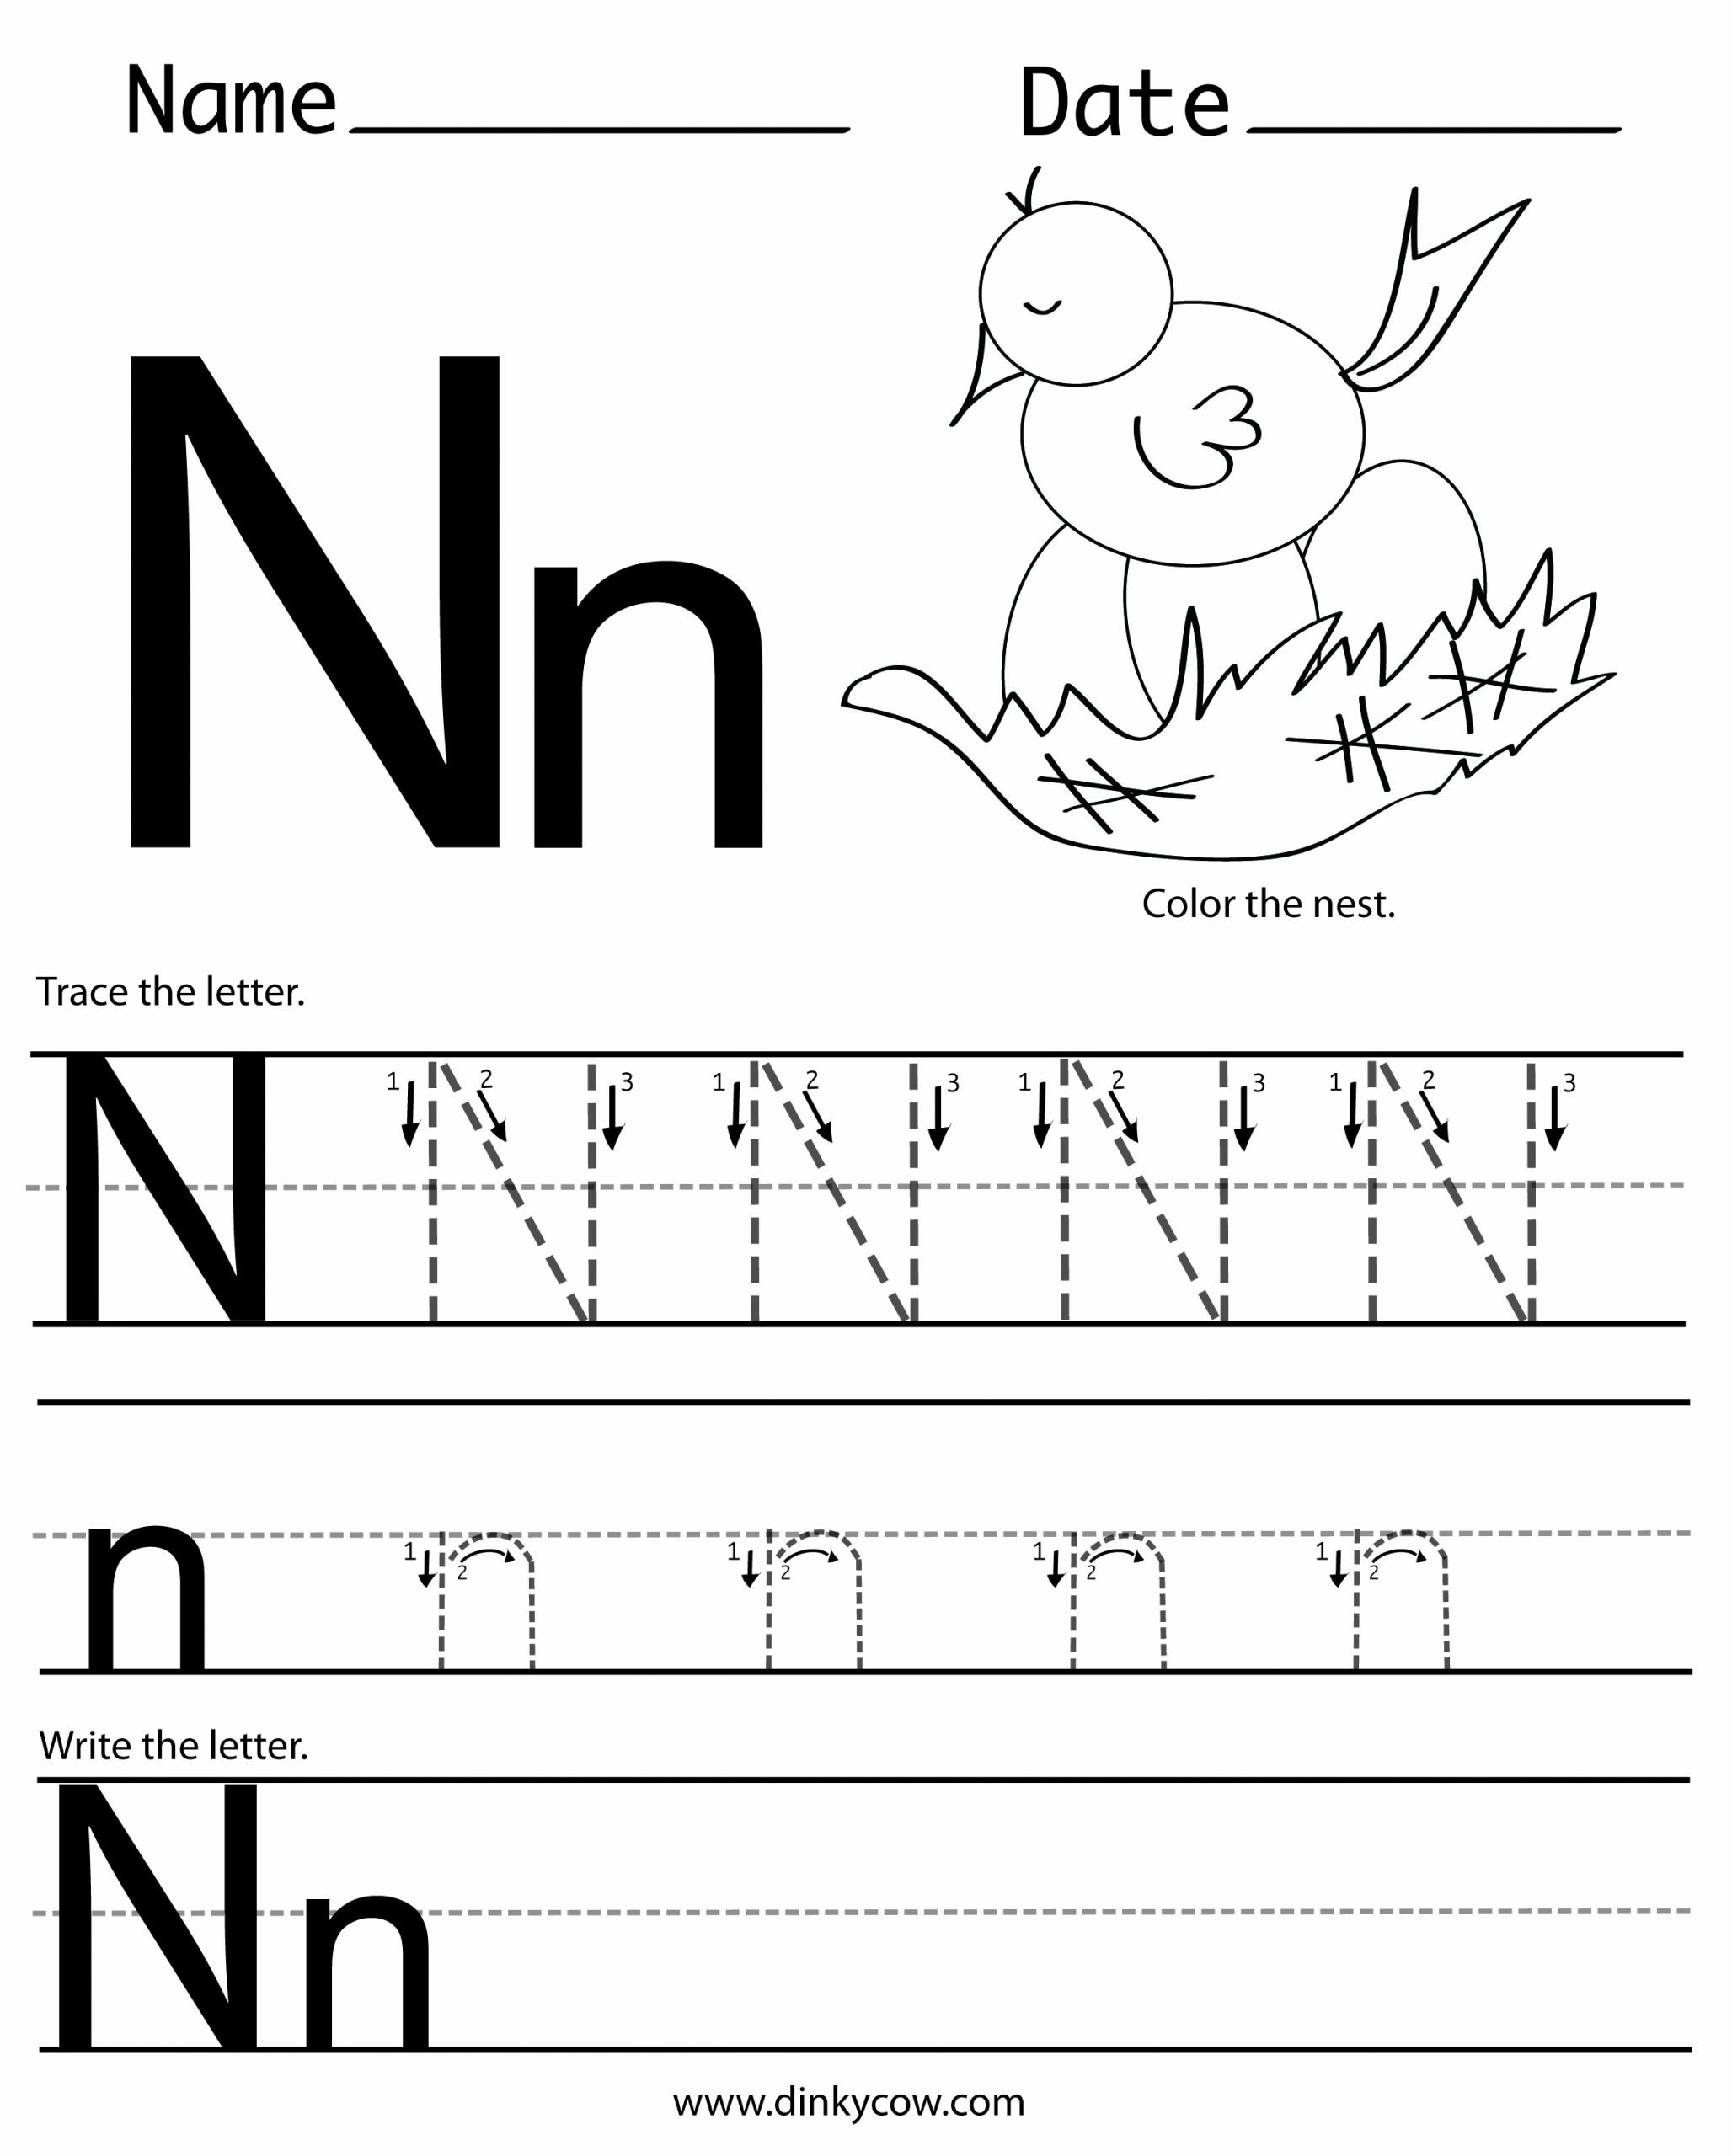 Letter N Worksheets for Preschoolers Inspirational N Free Handwriting Worksheet Print 2 400—2 988 Pixels